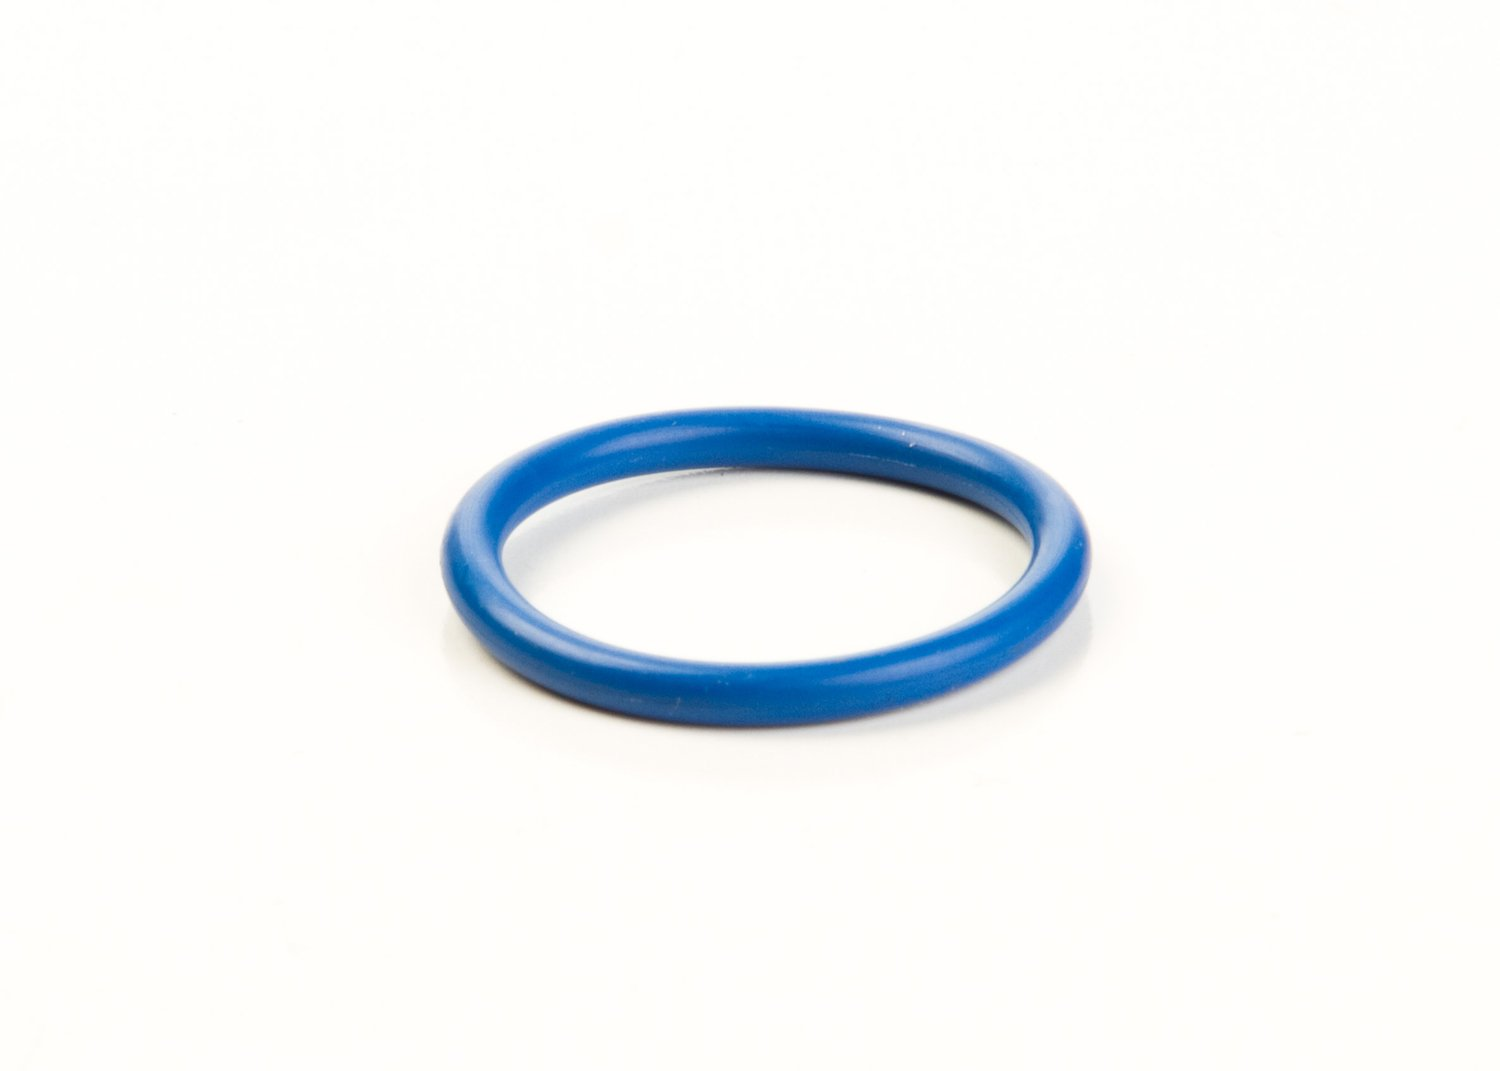 Briggs & Stratton 691031 O Ring Seal Replaces 280393, 270074, 691031